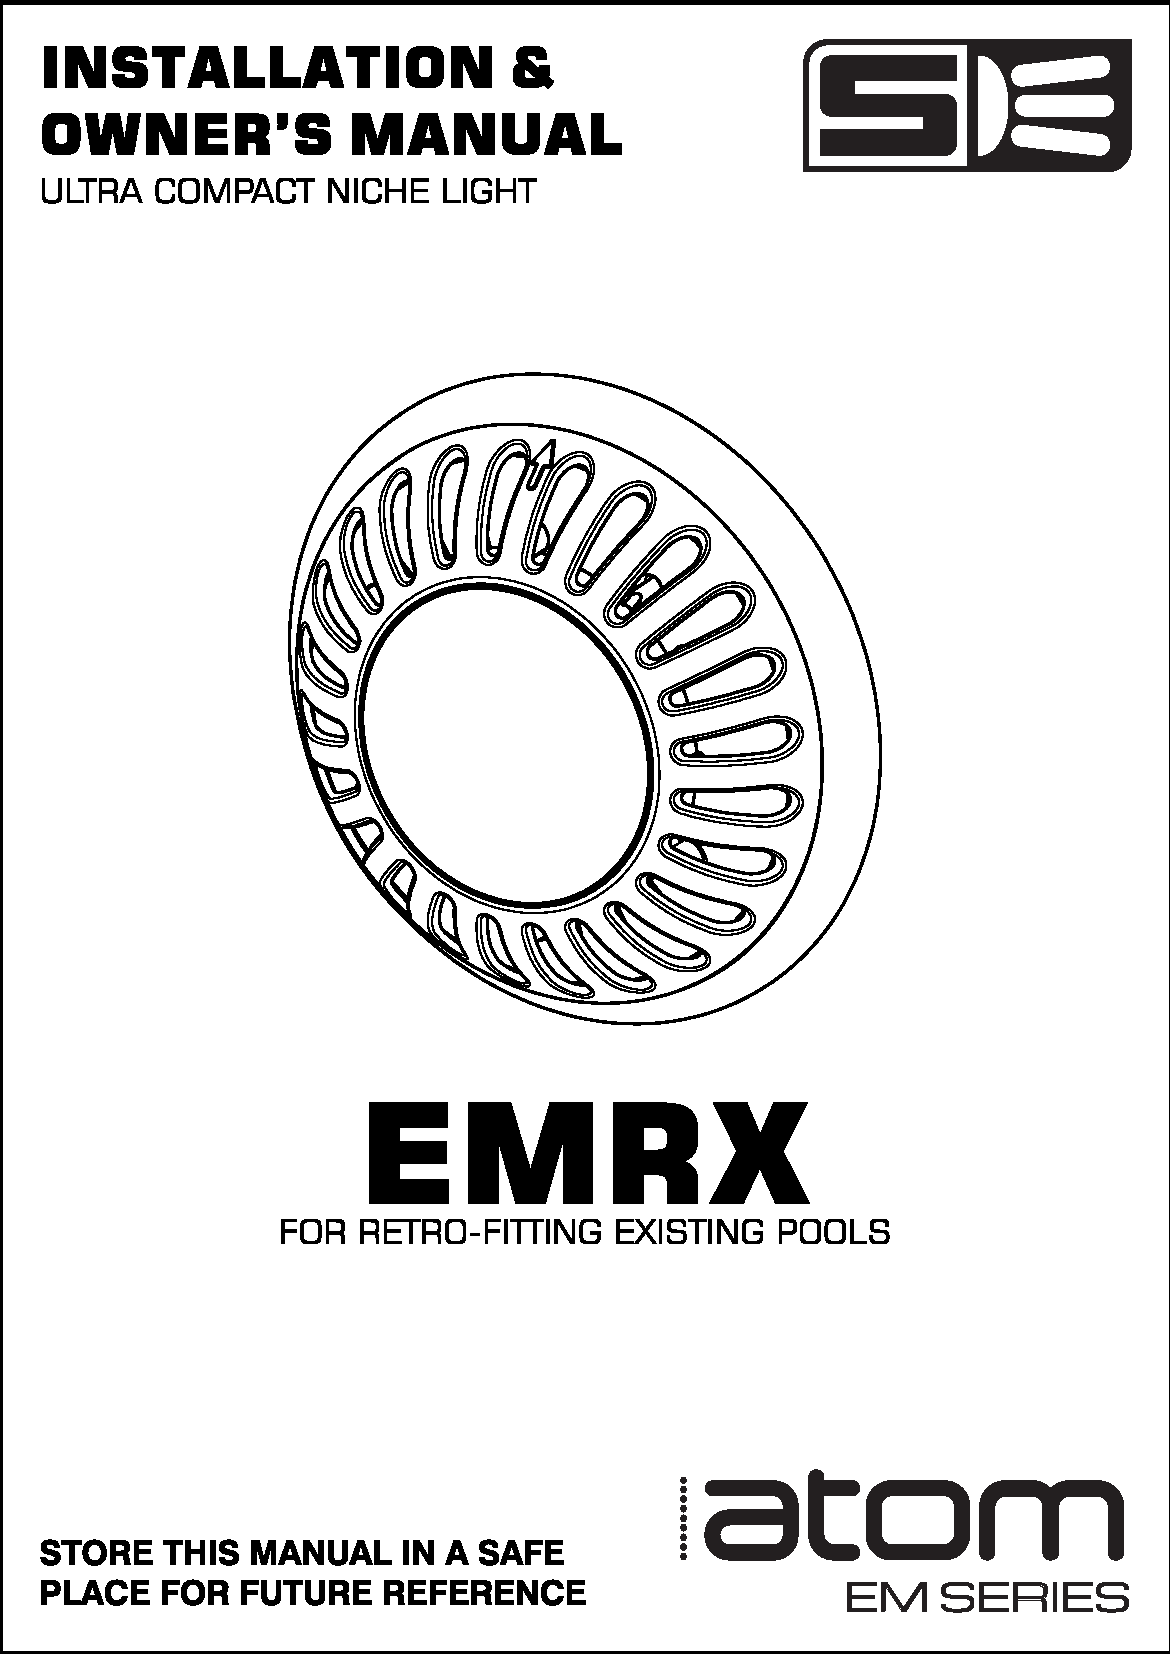 EMRX INSTALL_MANUAL_20180108_Page_01.png